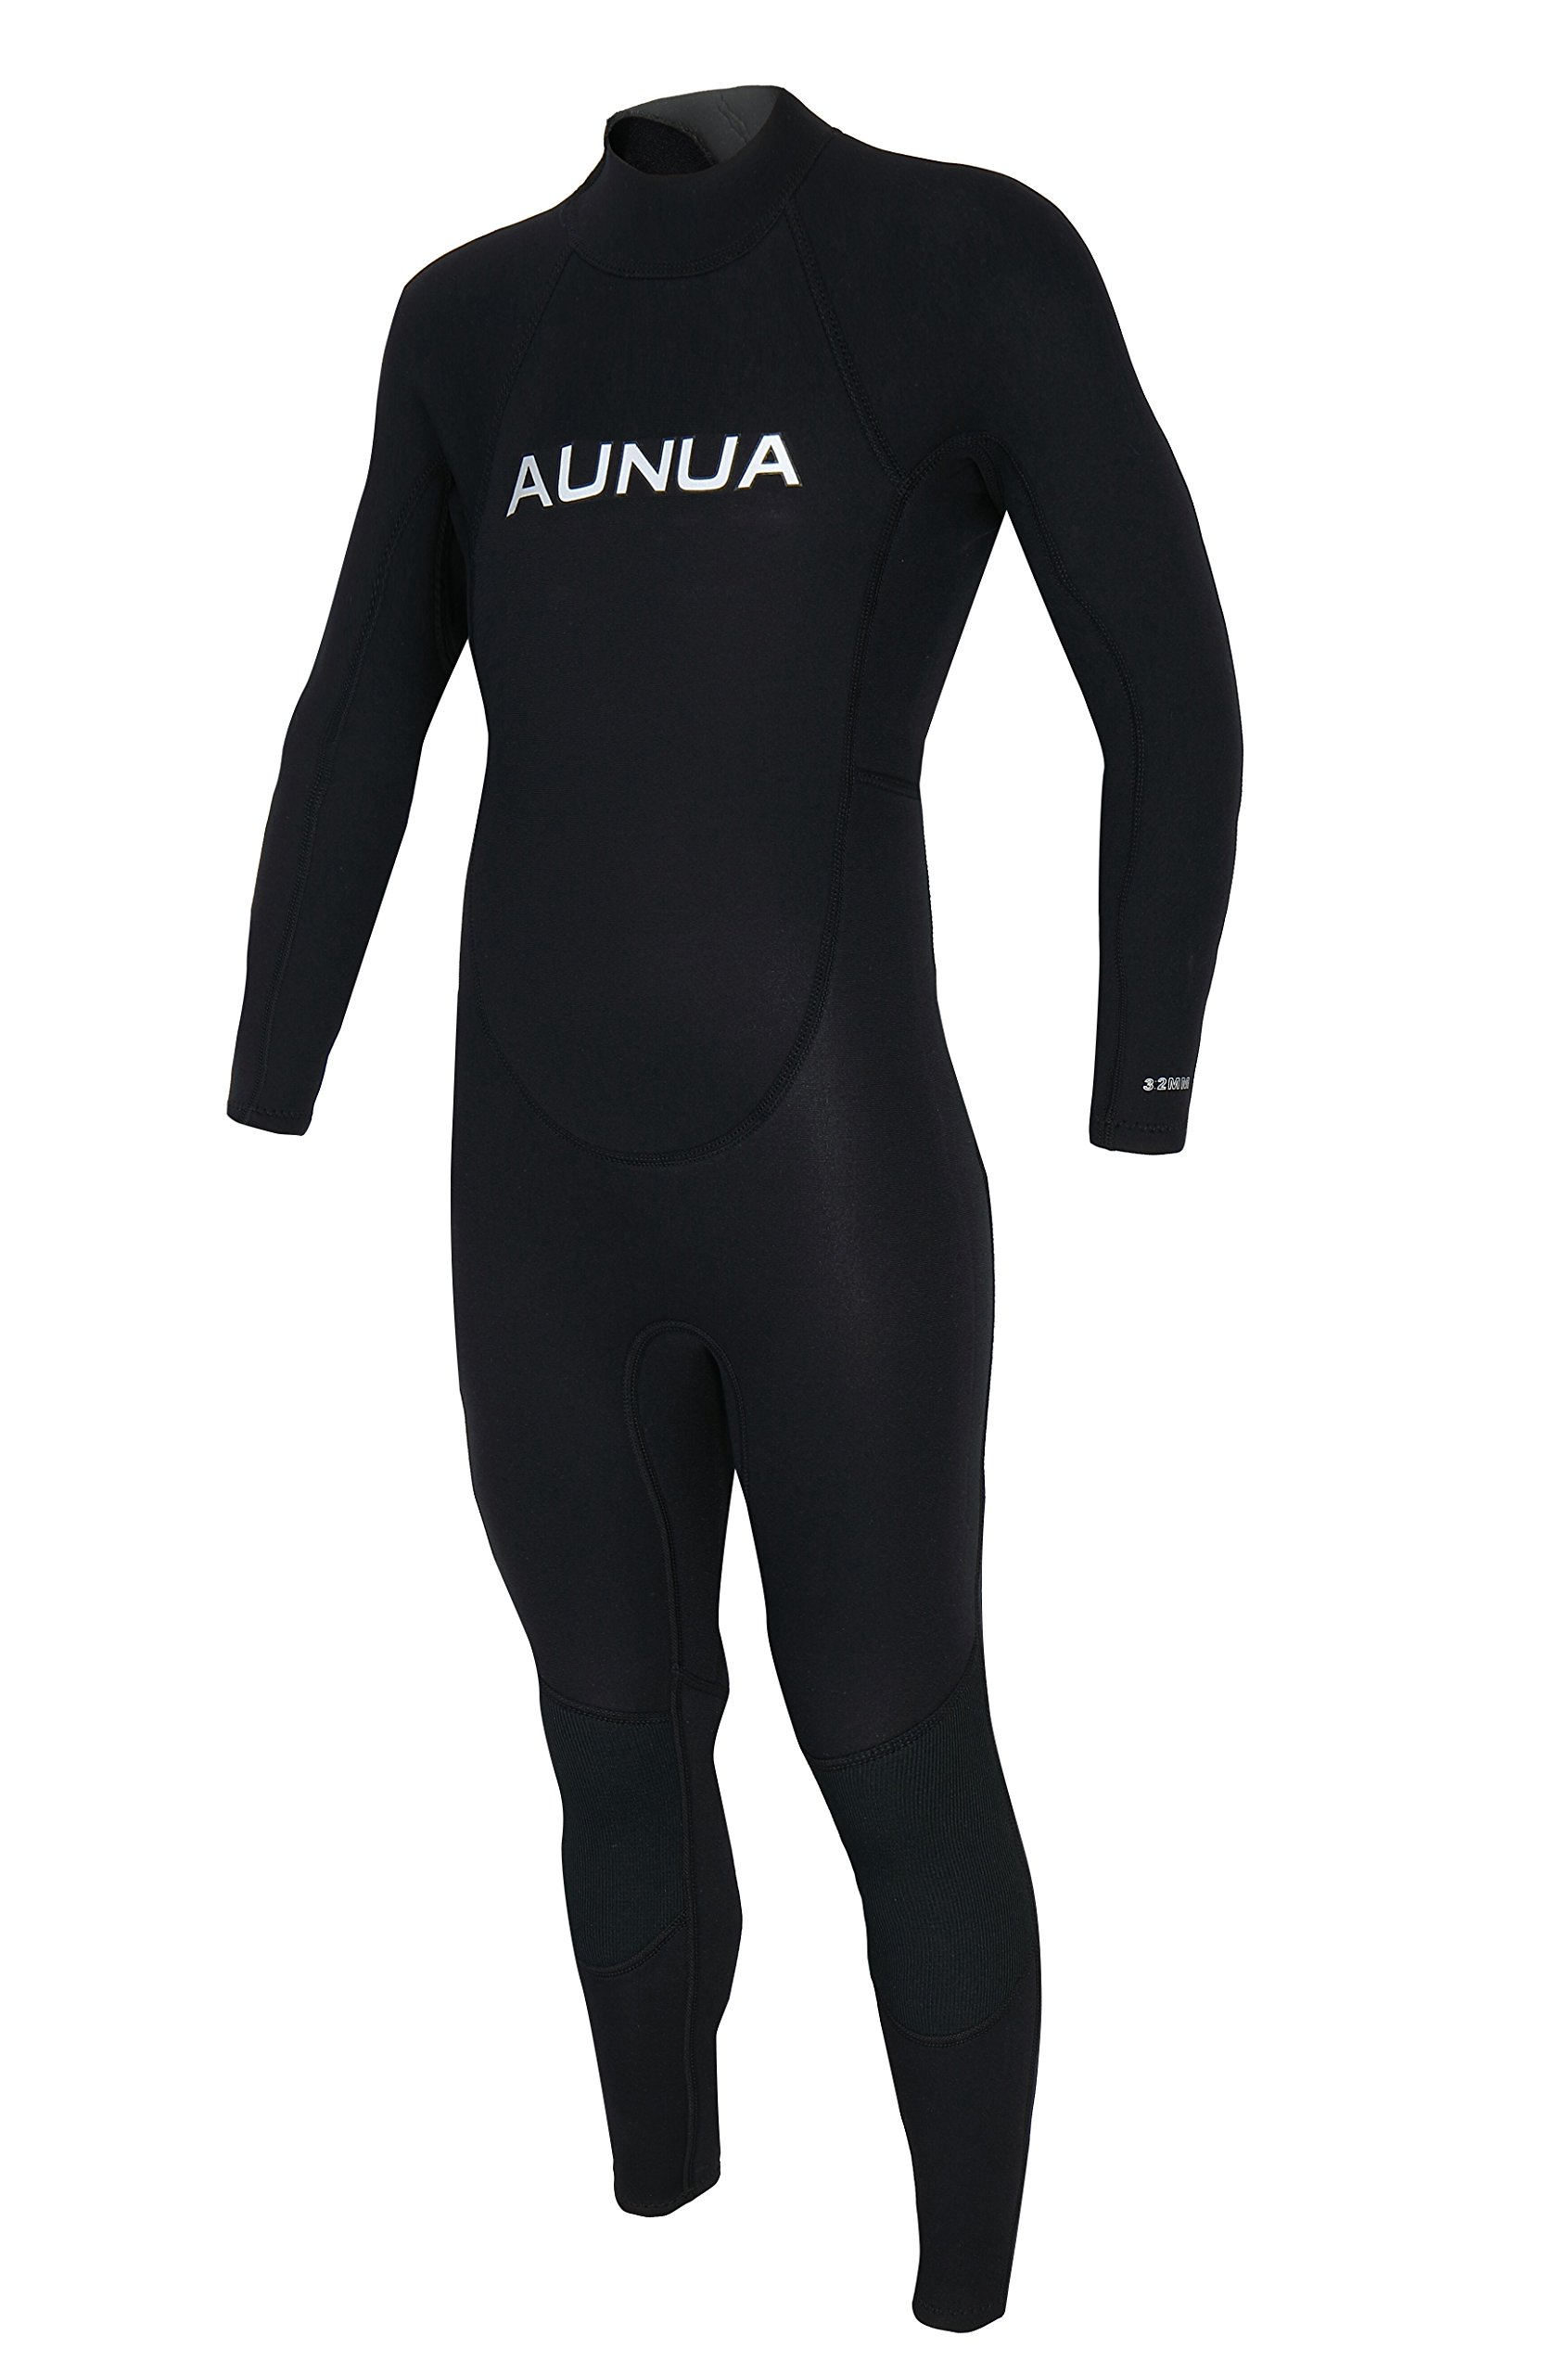 Aunua Youth 3/2mm Neoprene Wetsuits for Kids Full Wetsuit Swimming Suit Keep Warm(7031 Black 6)